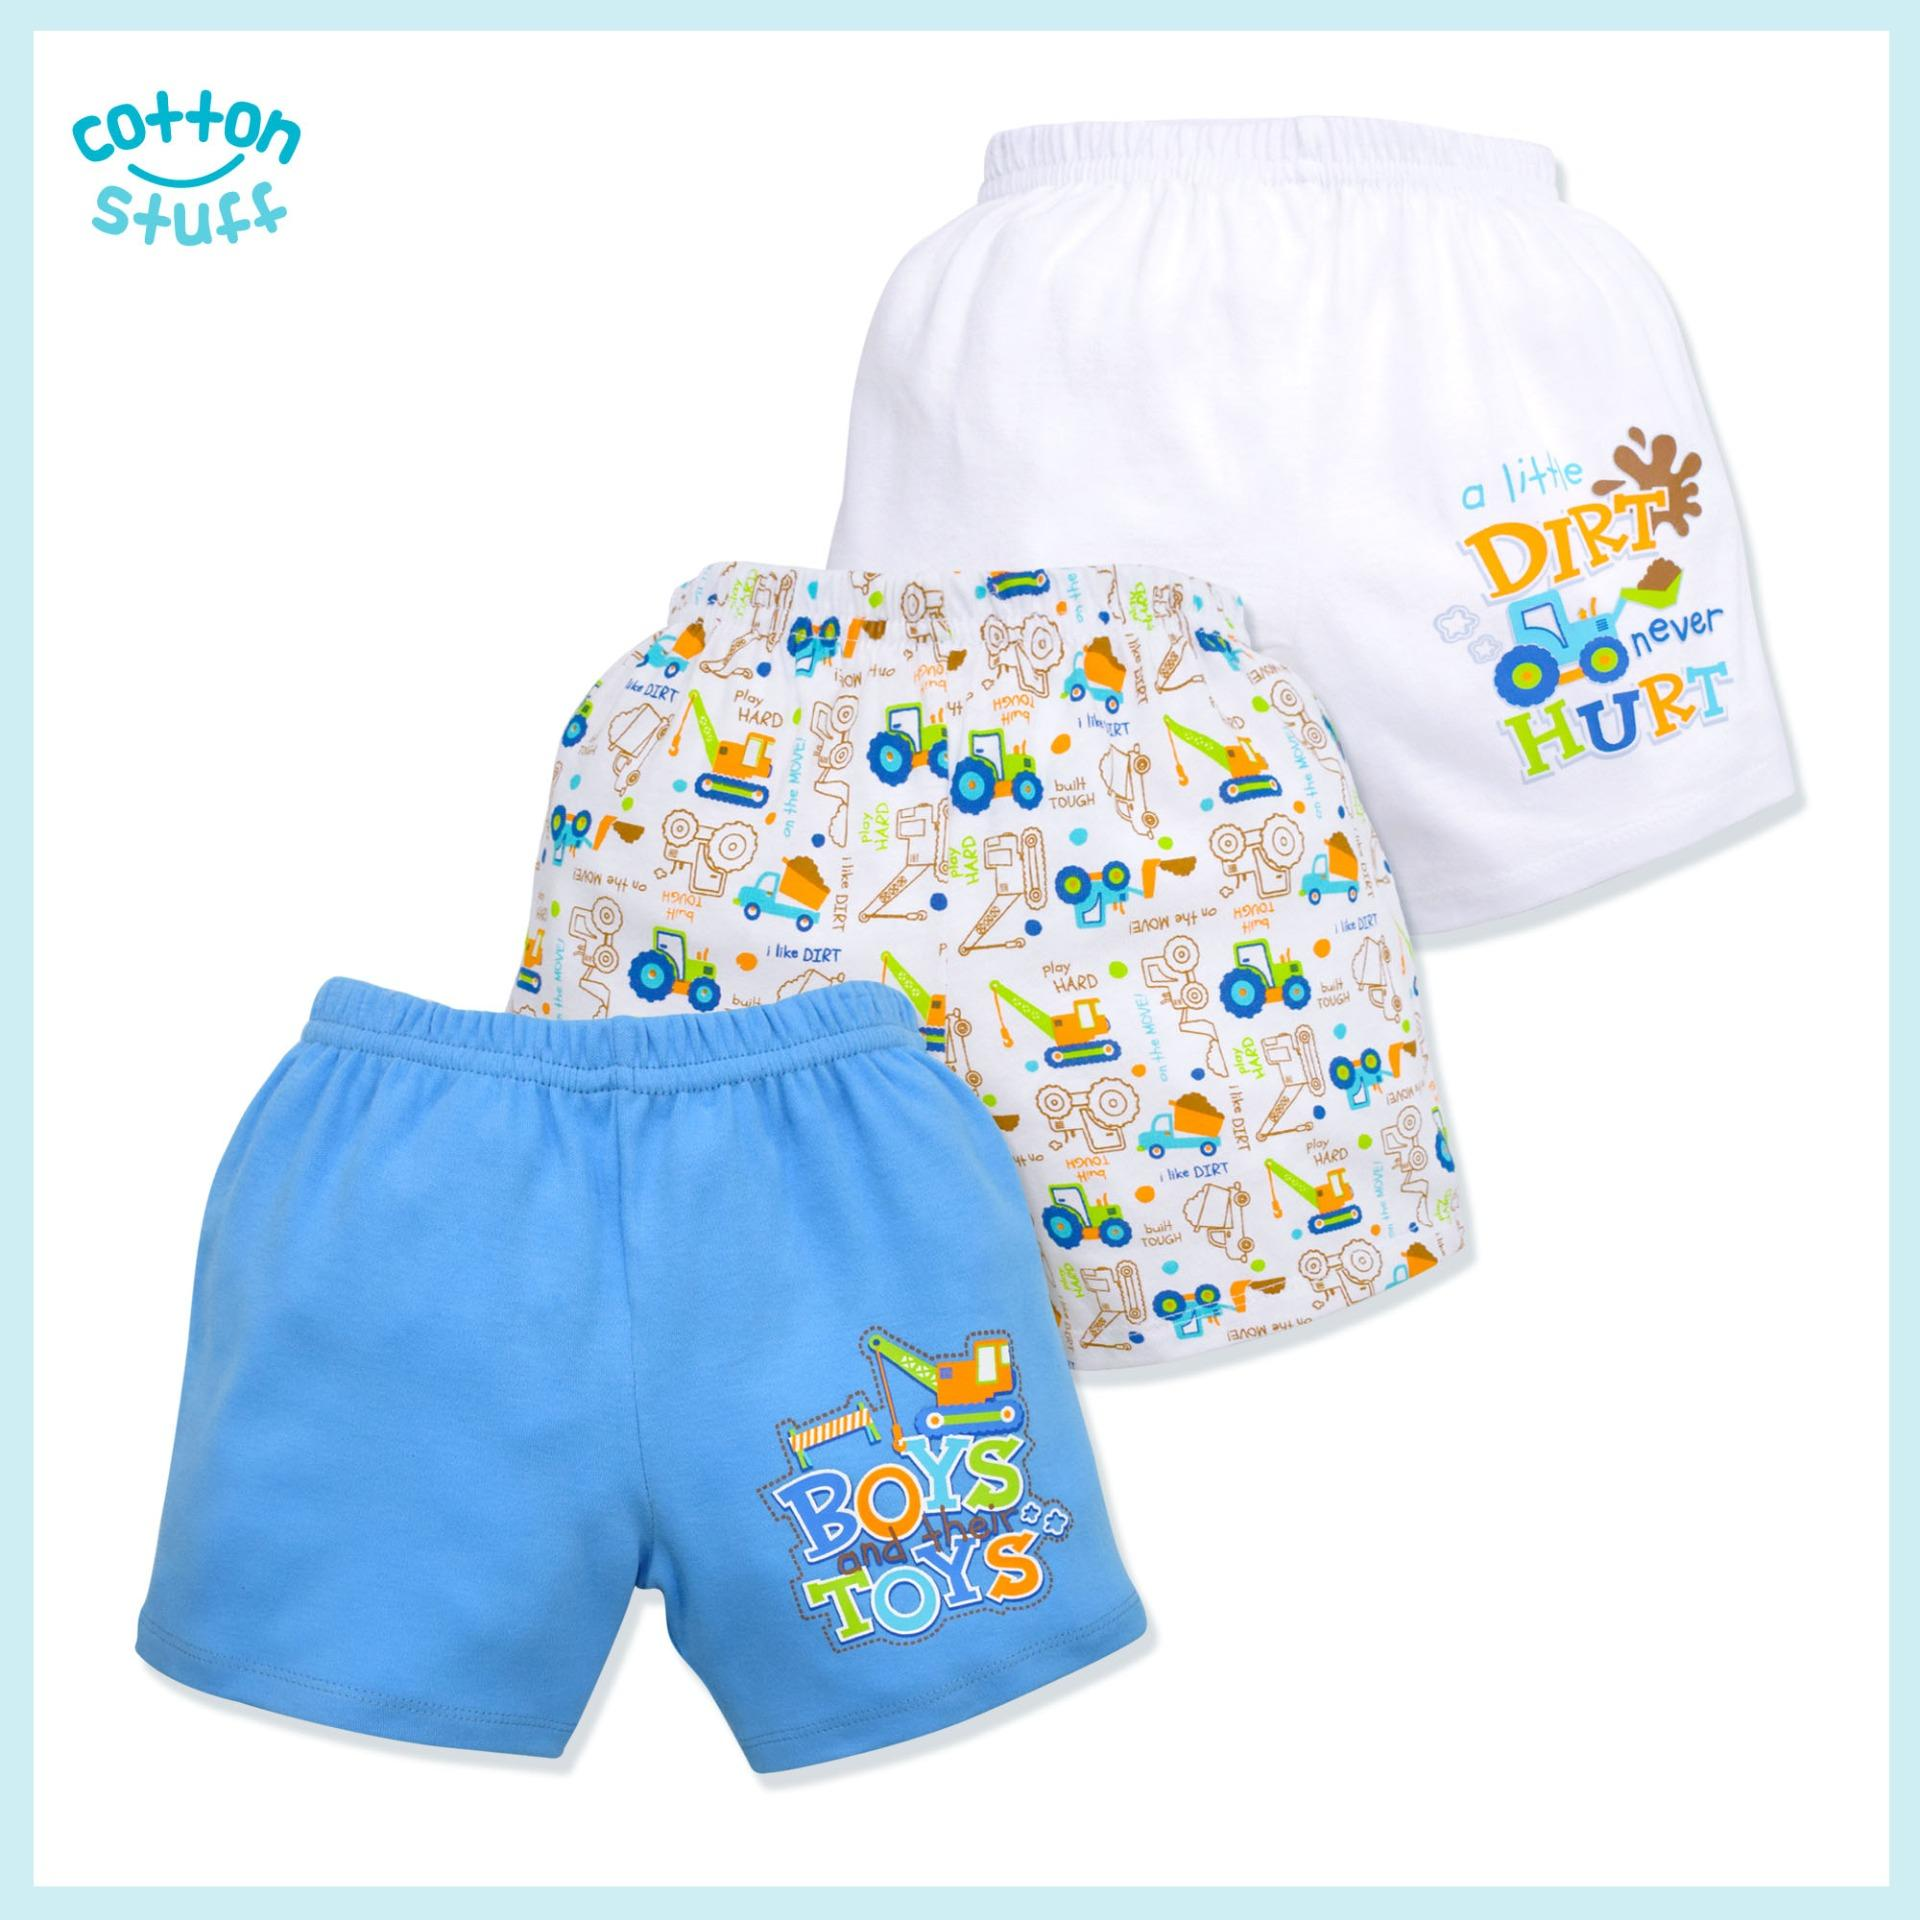 39df015f299c Boys Shorts for sale - Baby Shorts for Boys online brands, prices ...